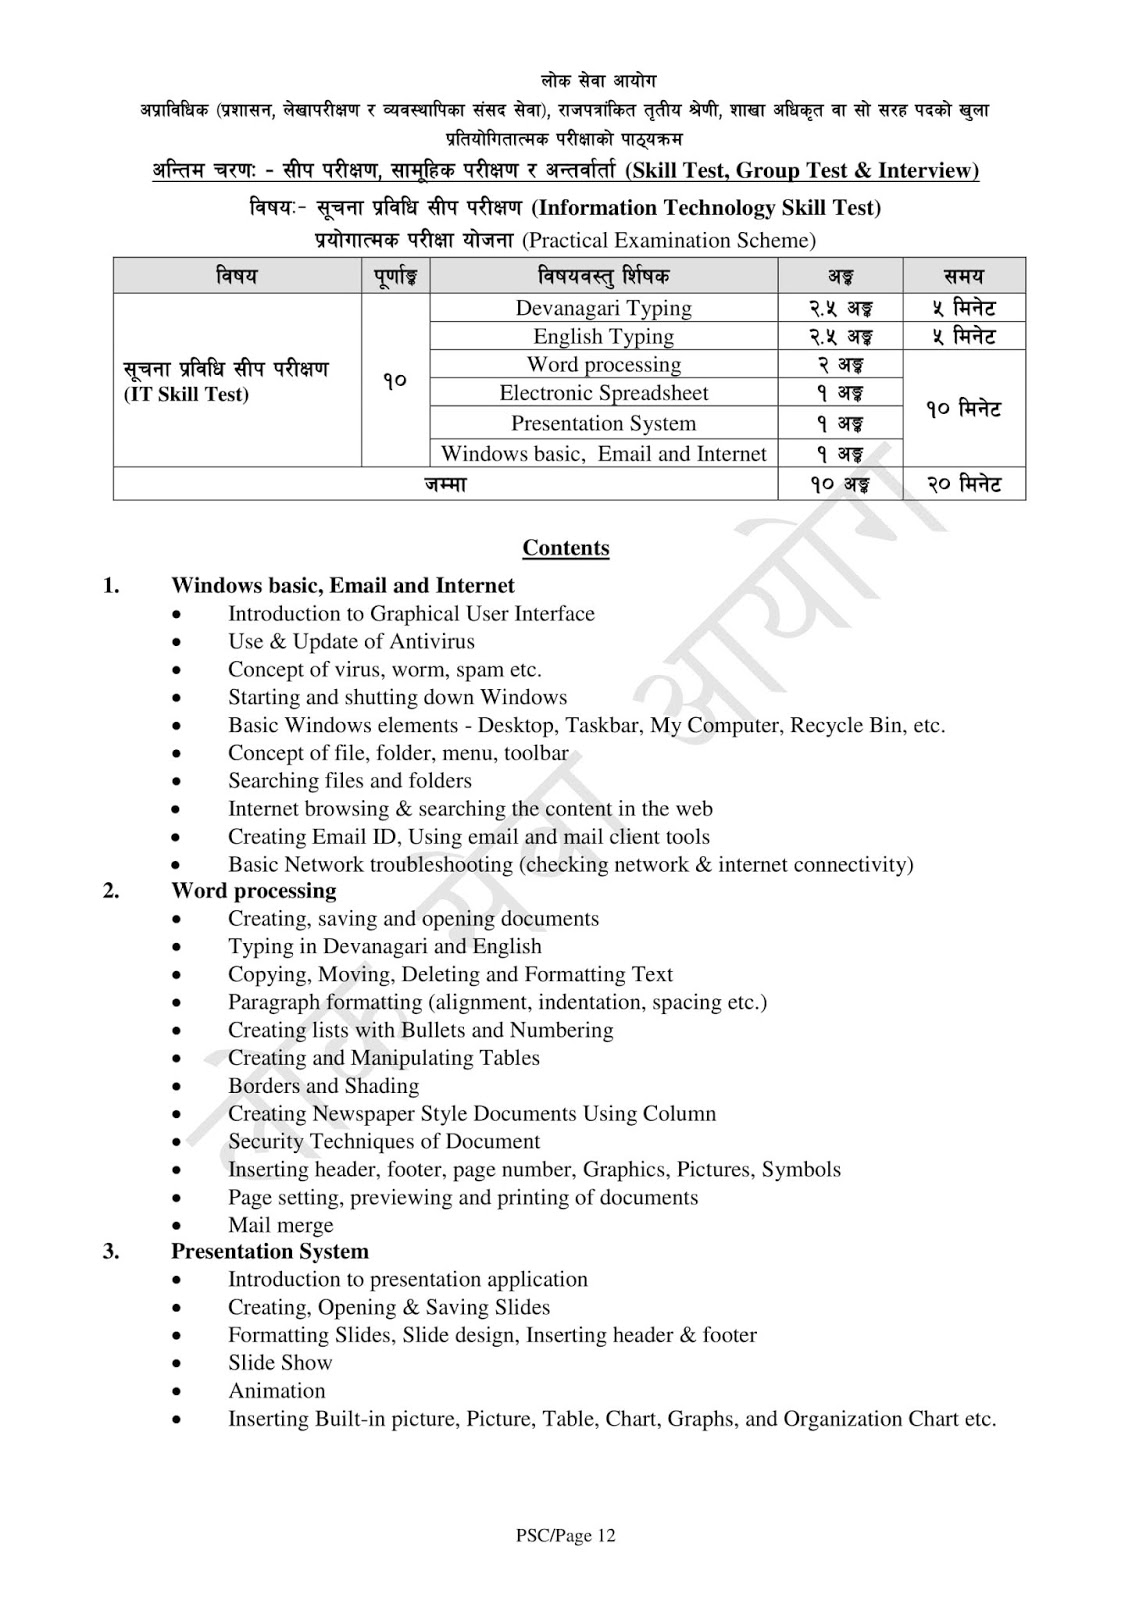 Computer Skill Test Syllabus, Modal And Practice Question Set For Section Officer, Na.Su And Kharidar